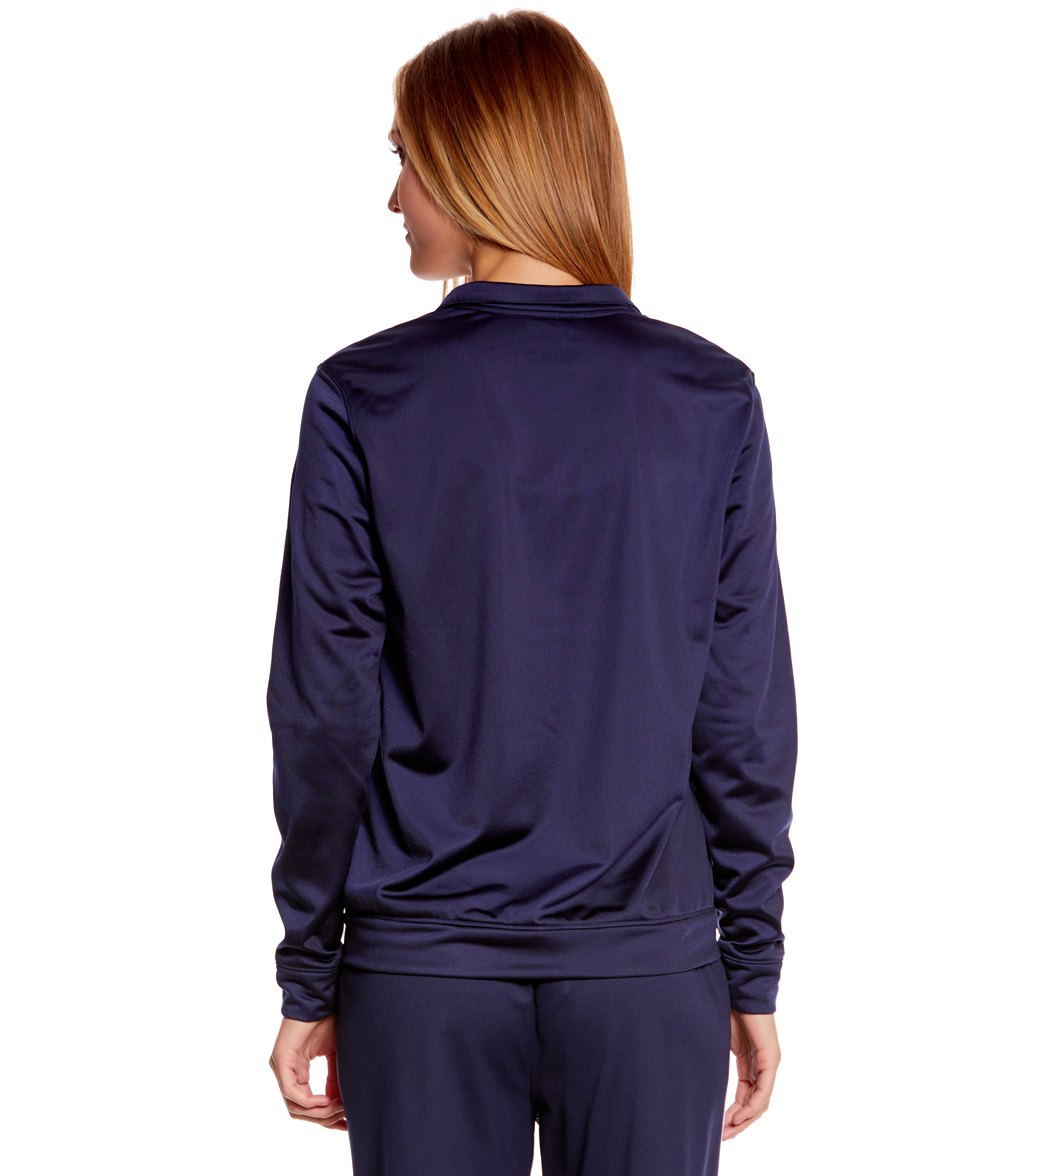 f88ed1f33 Under Armour Women's Rival Knit Warm-Up Jacket at SwimOutlet.com ...